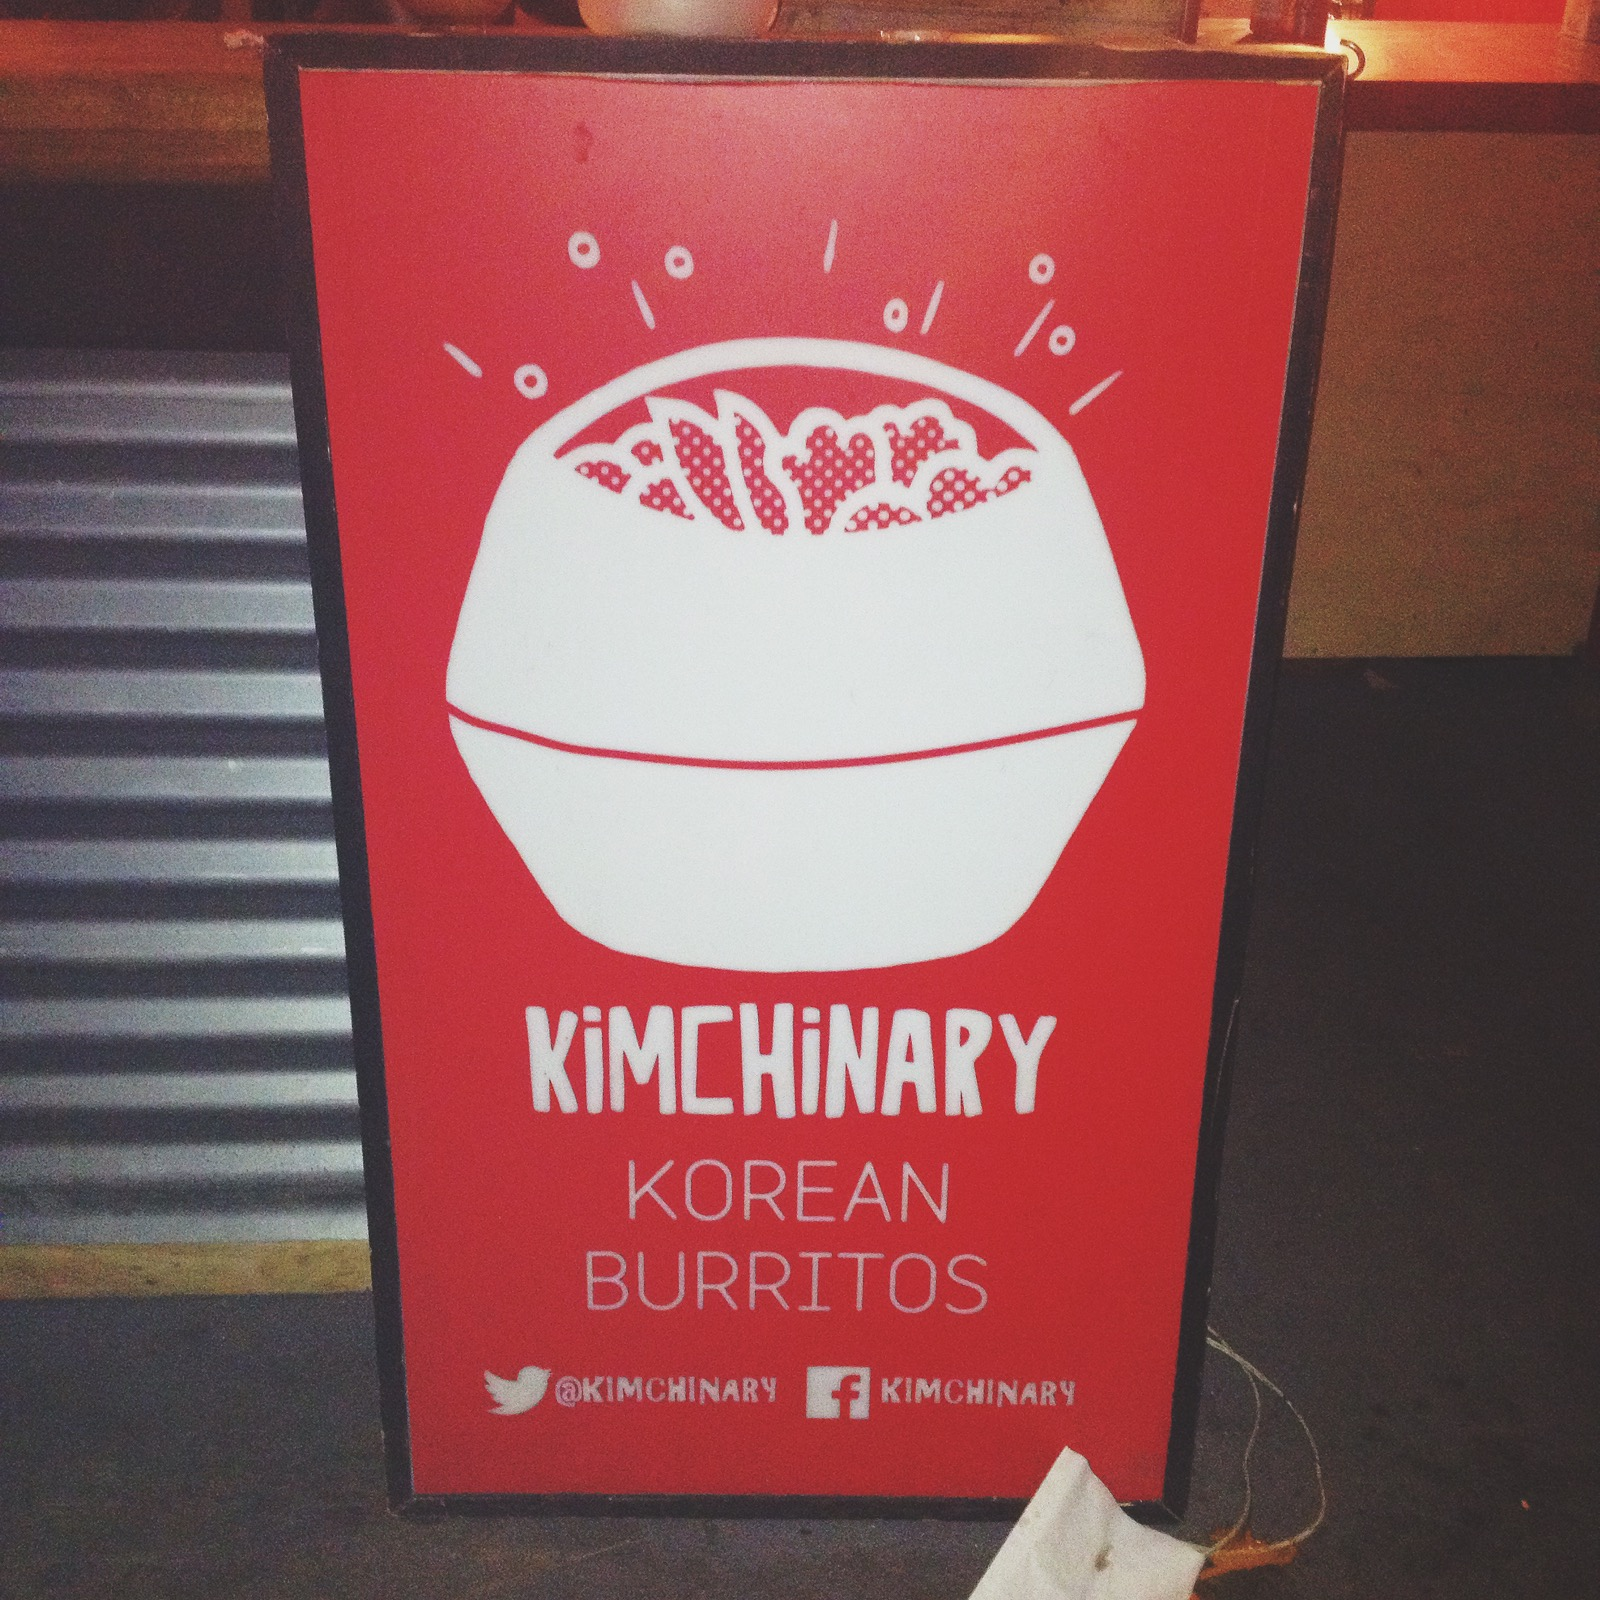 ...an incredible mix of Korean and Mexican cuisinefrom  Kimchinary